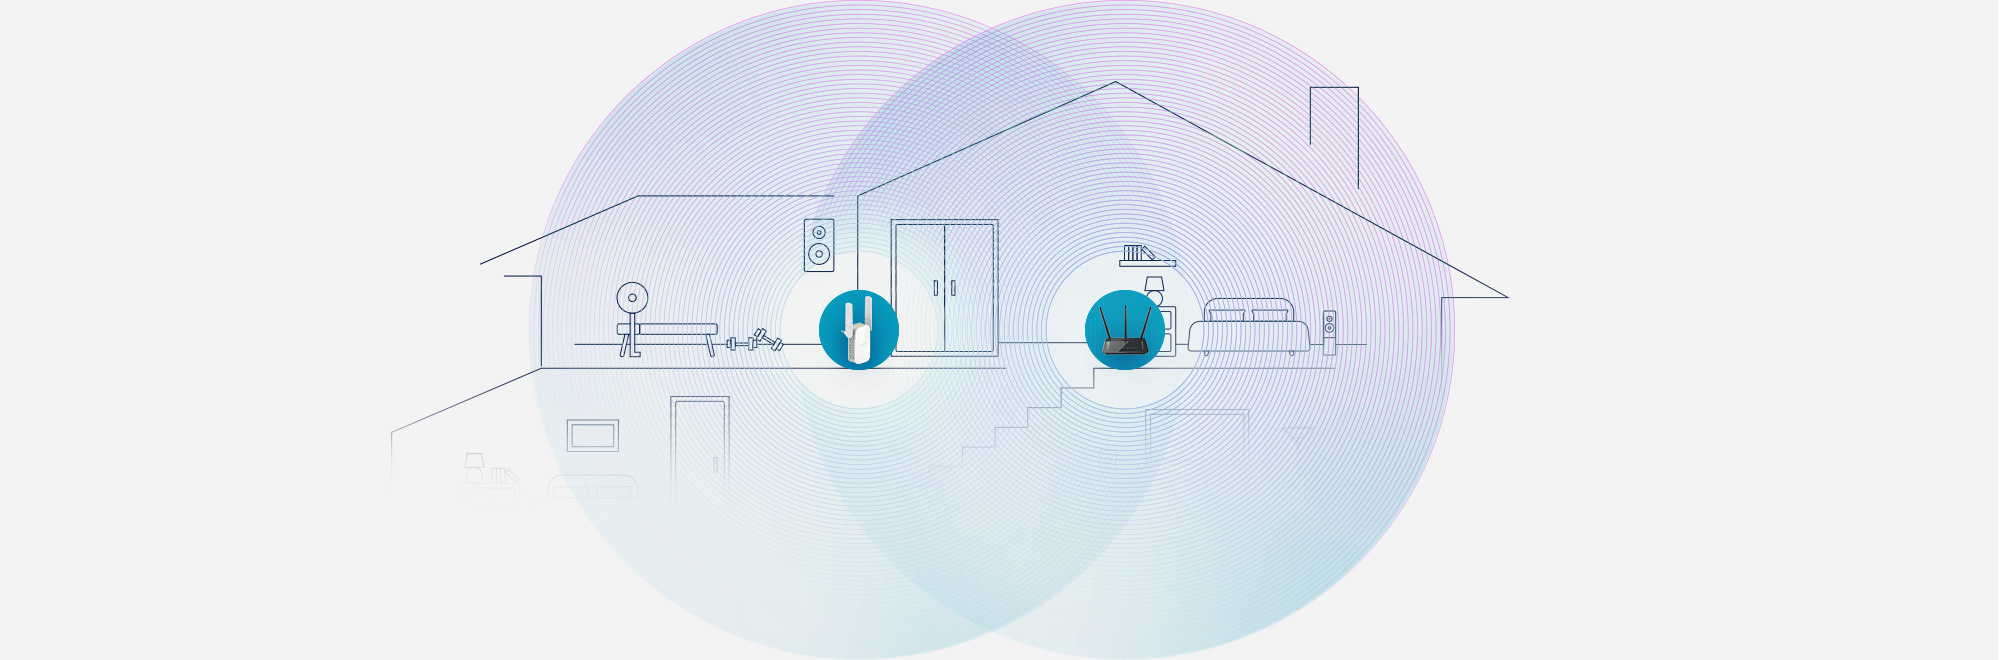 Extend your WiFi network to reach all rooms in your house